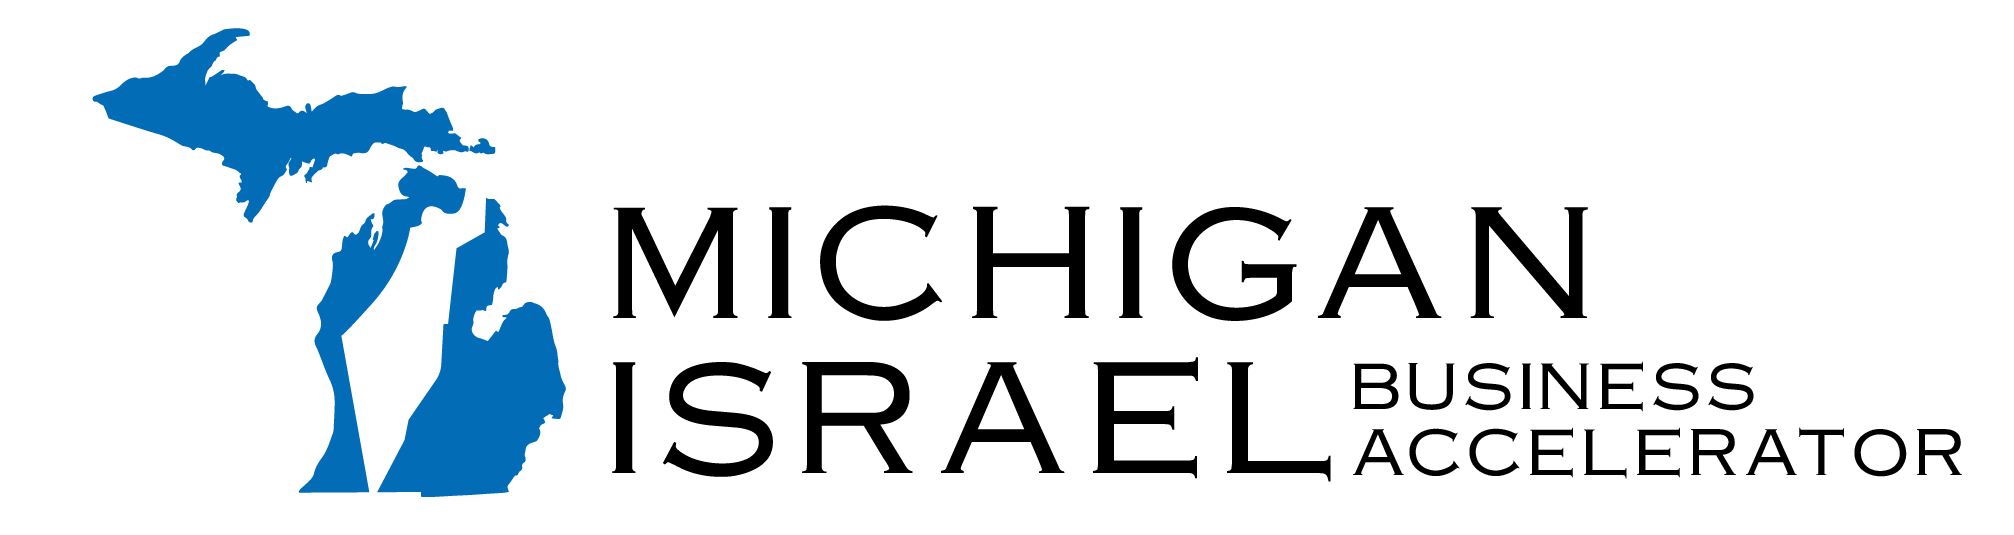 Michigan Israel logo